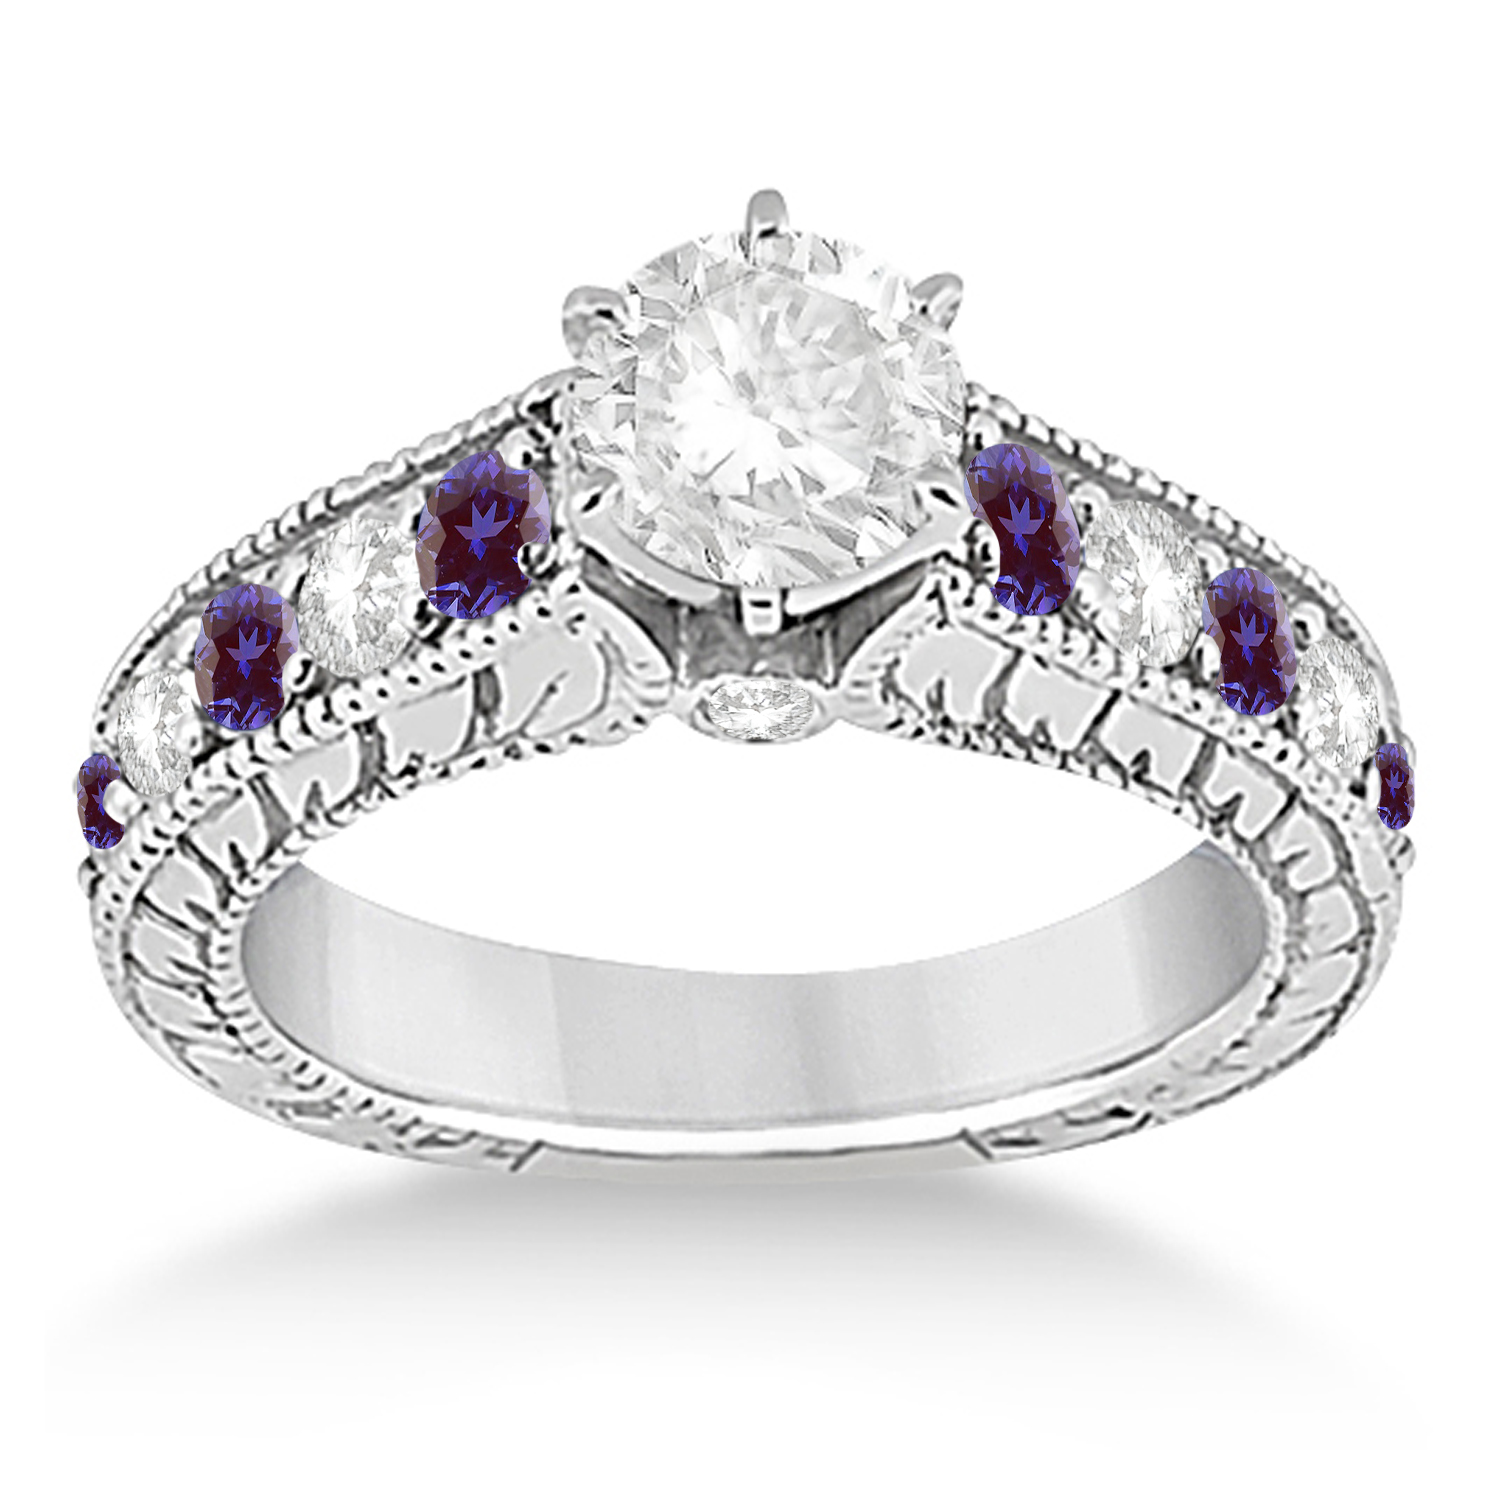 Vintage Diamond and Lab Alexandrite Engagement Ring 18k White Gold (1.41ct)